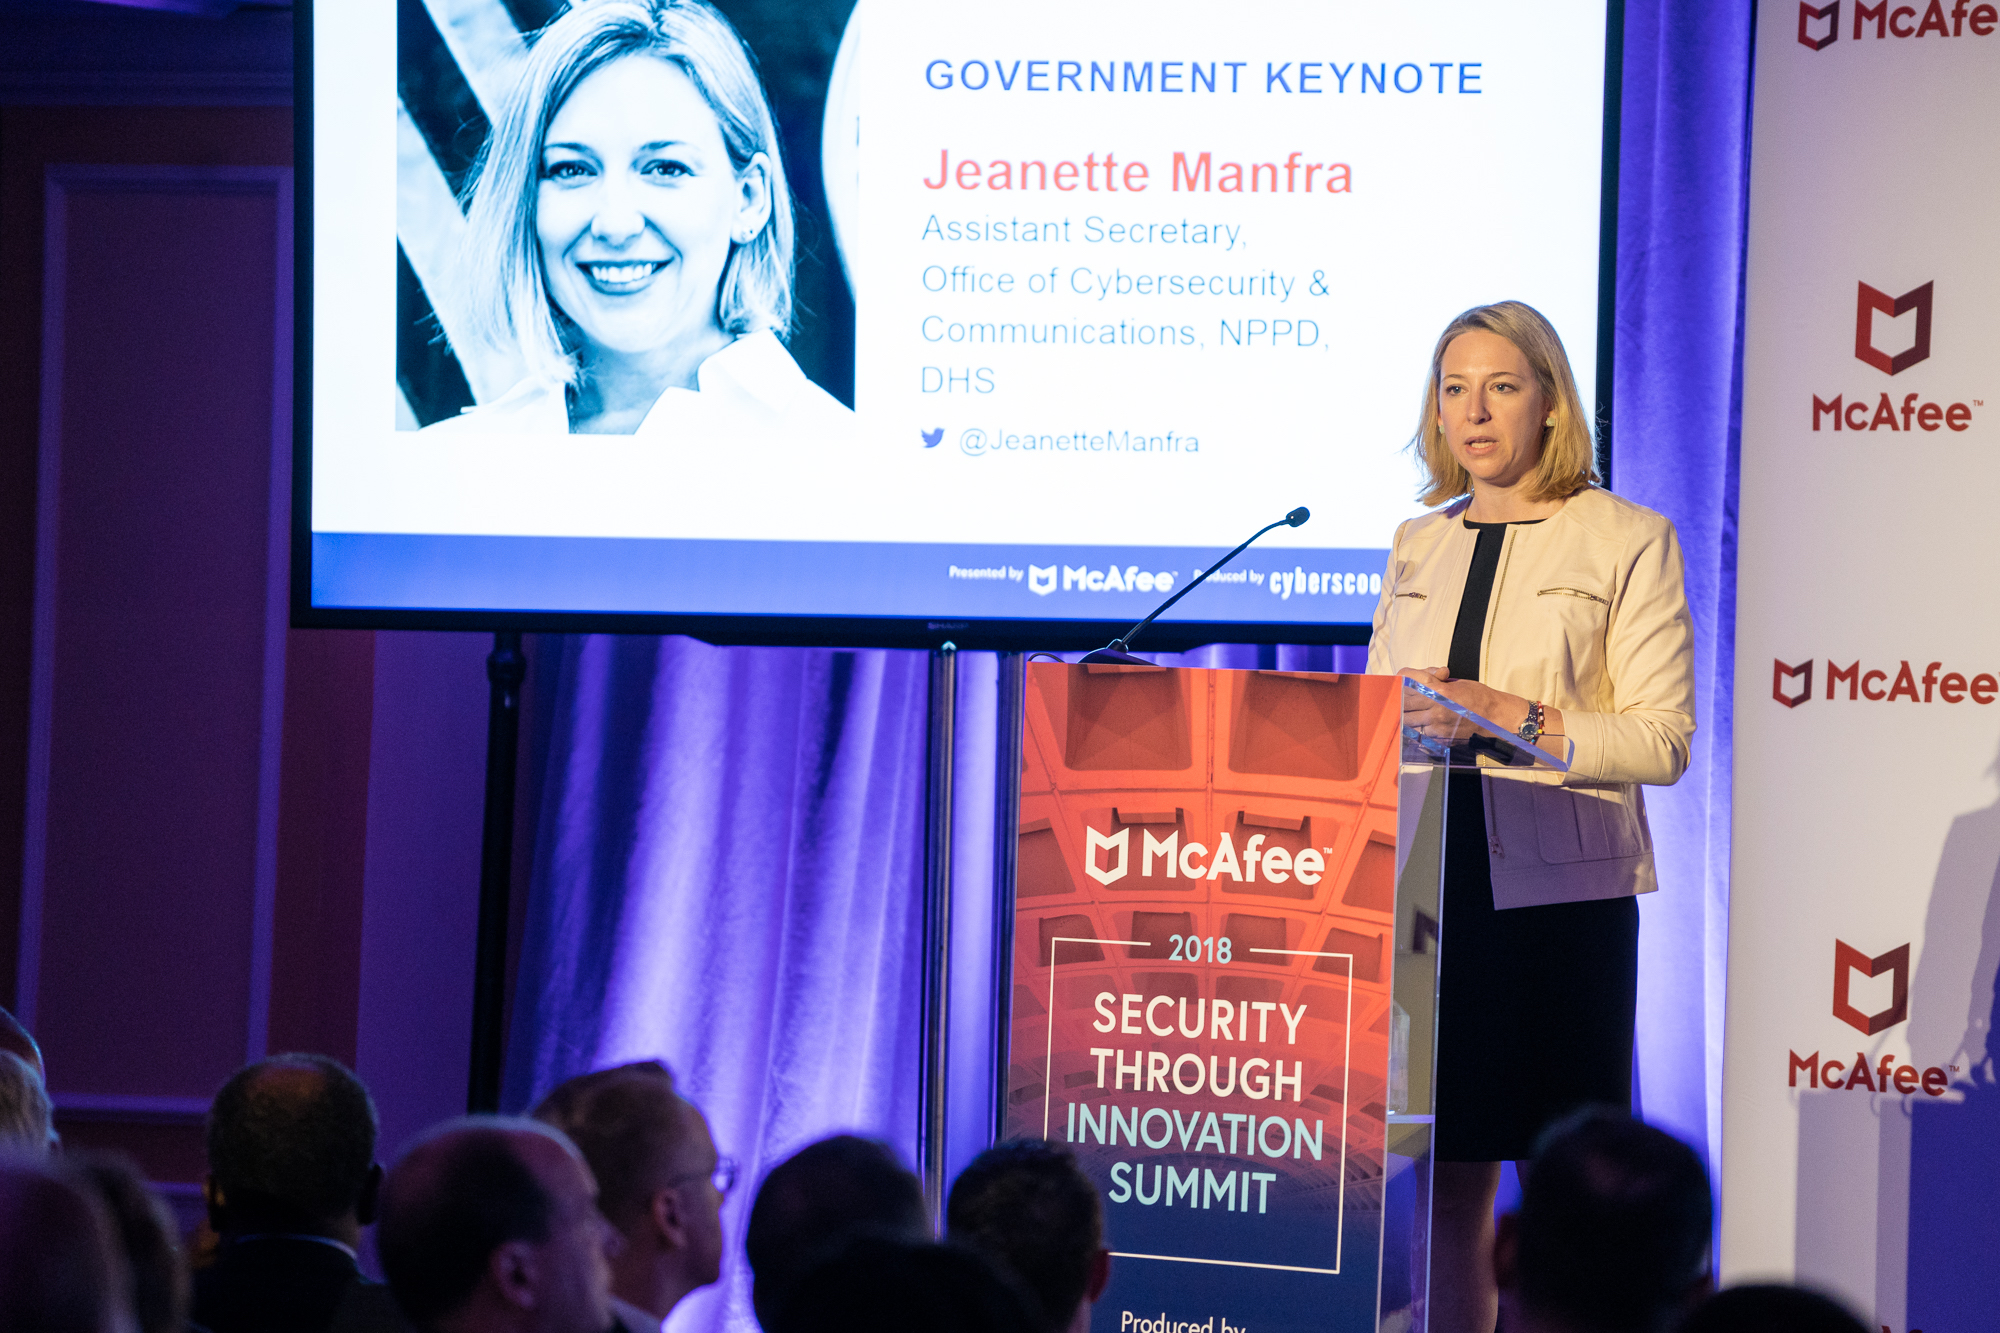 Jeanette Manfra, Department of Homeland Security